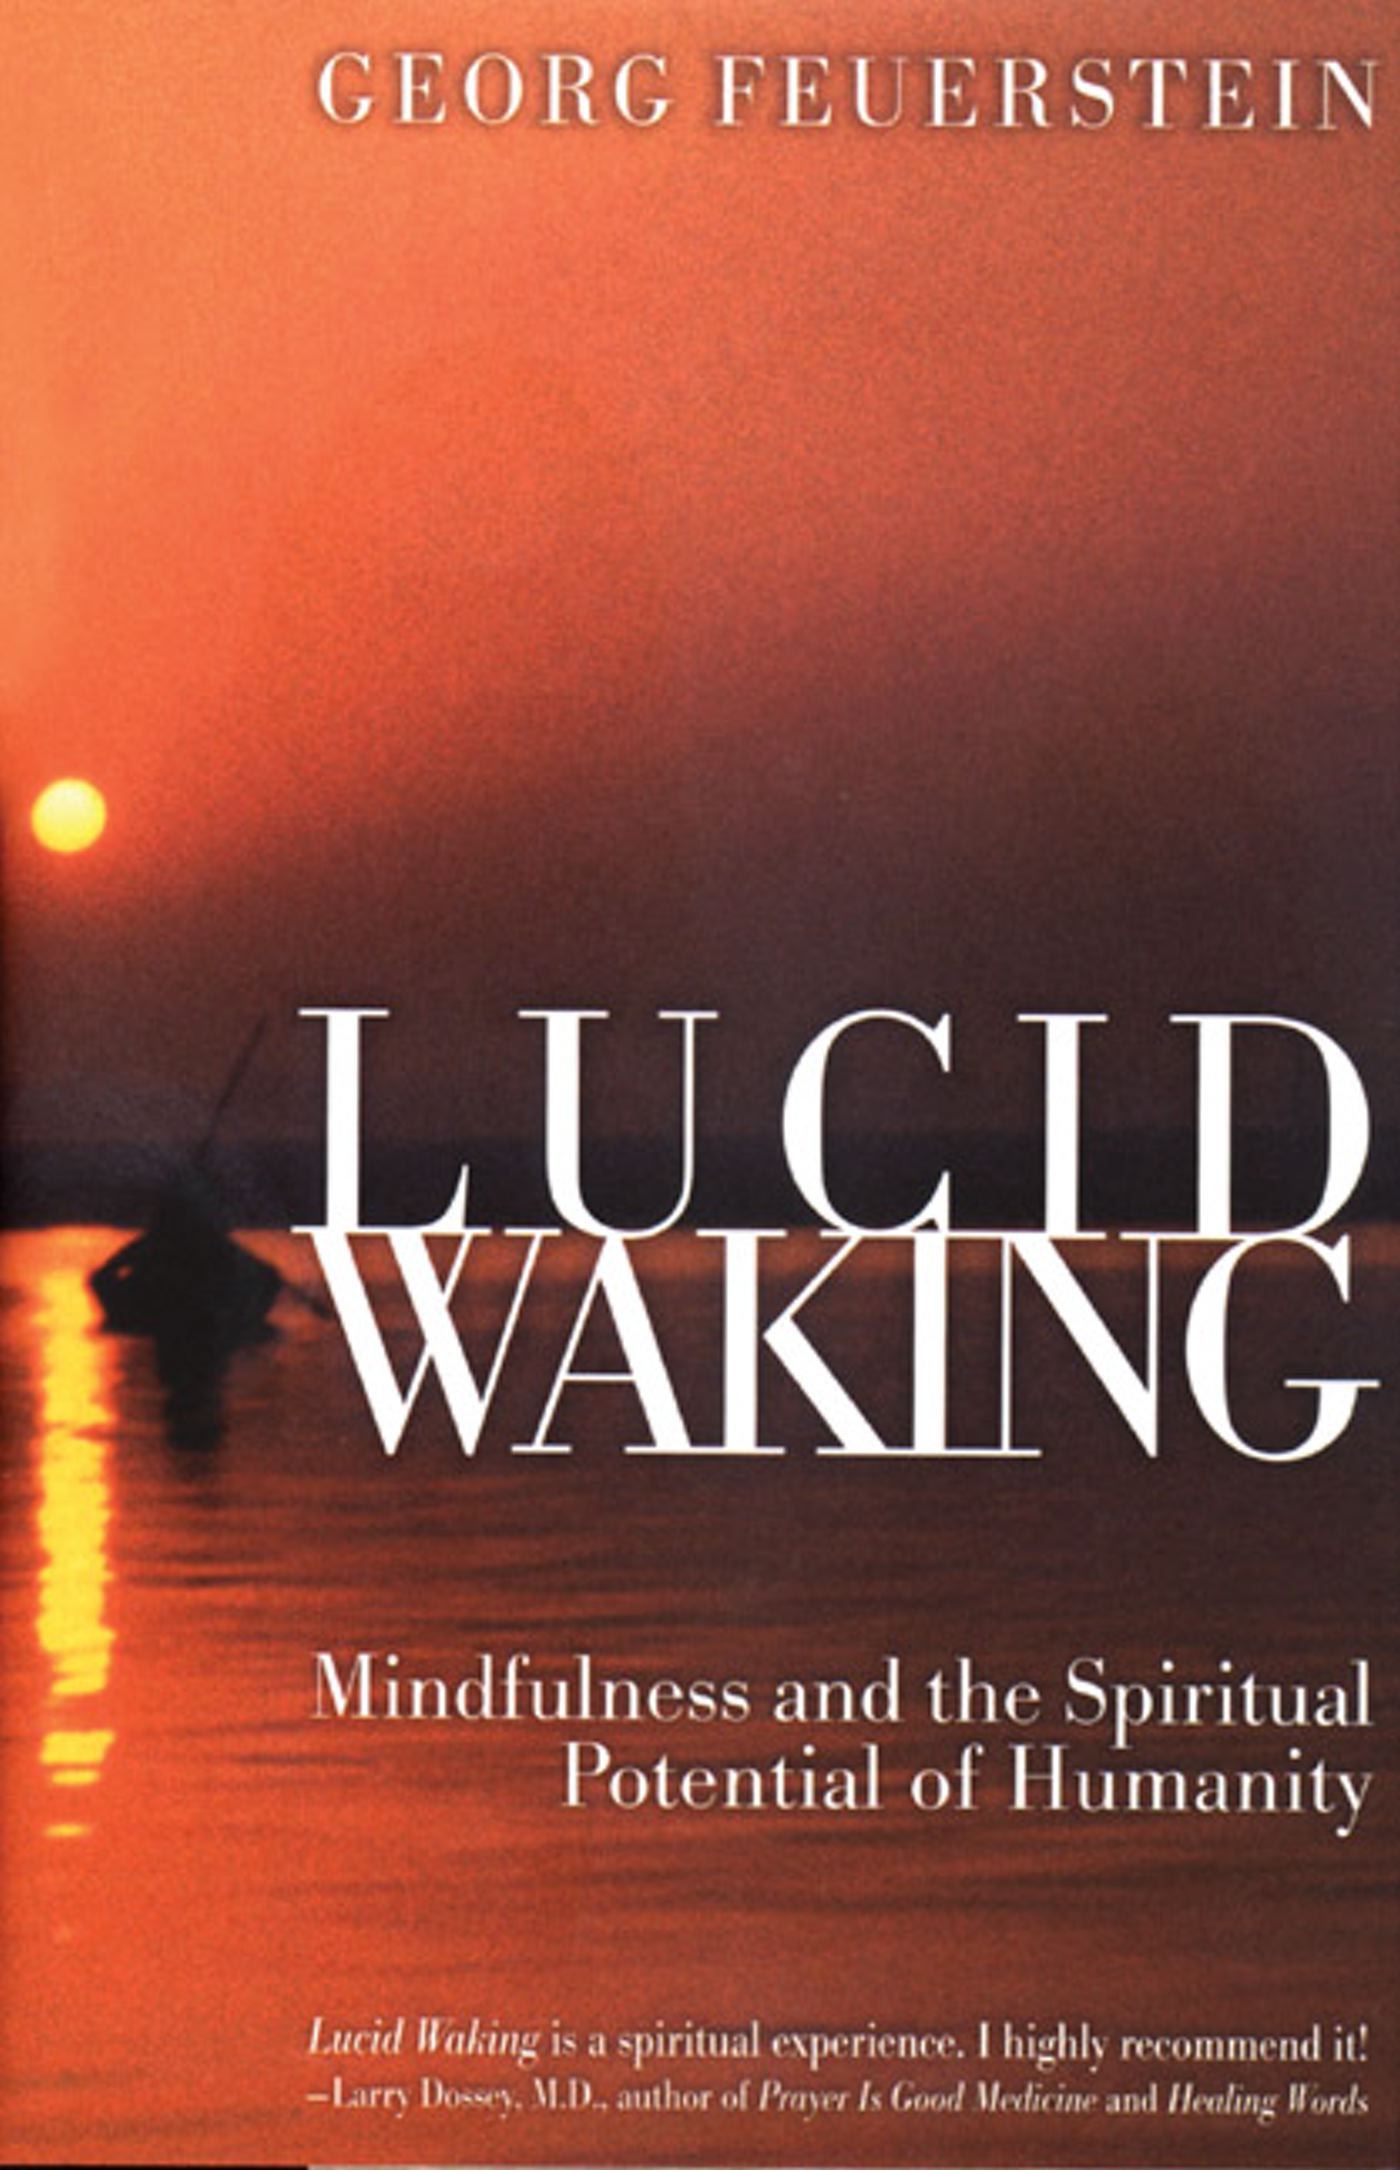 Lucid waking 9780892816132 hr